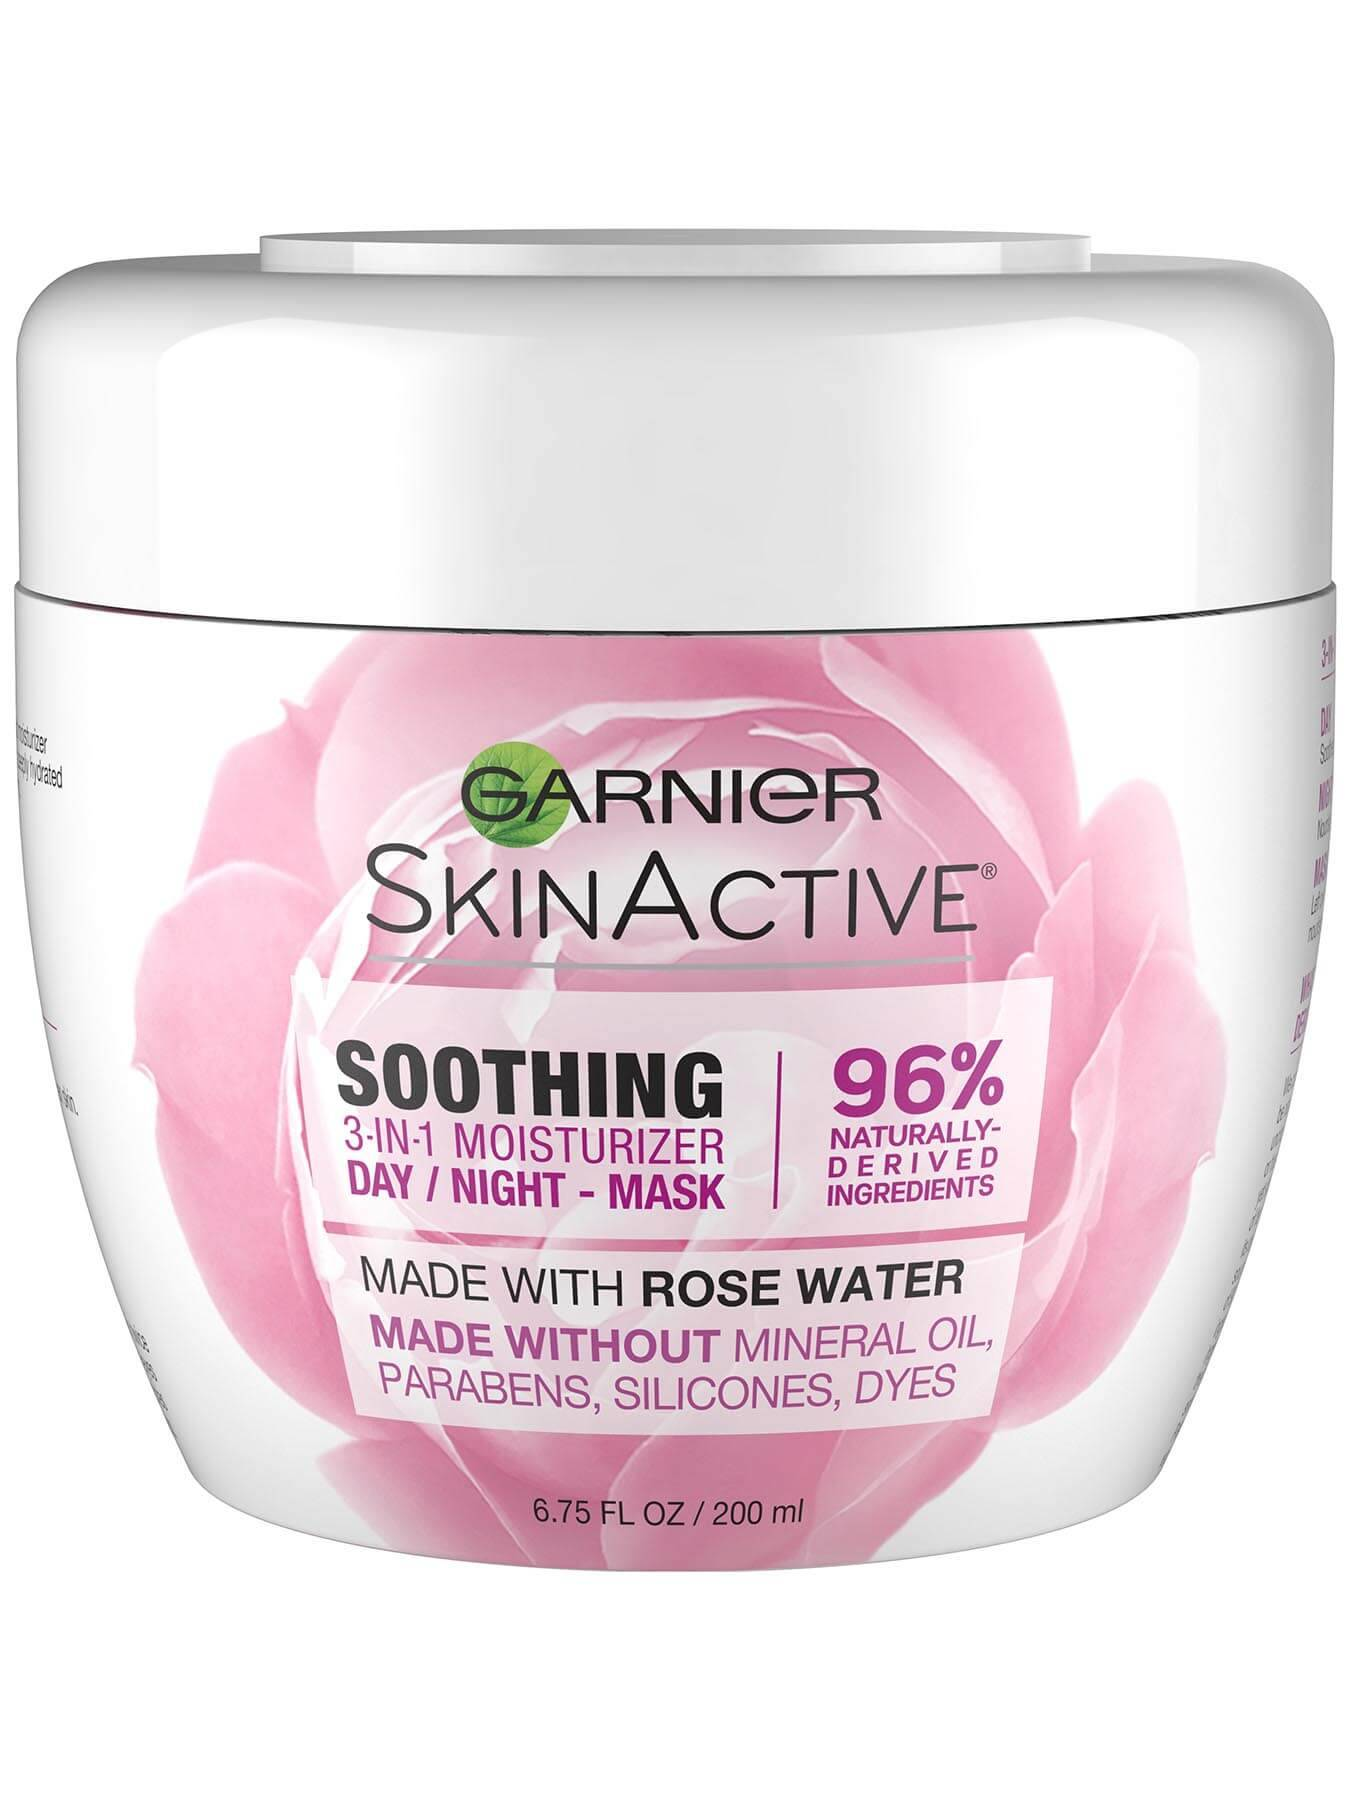 Front view of Soothing 3-in-1 Face Moisturizer with Rose Water.